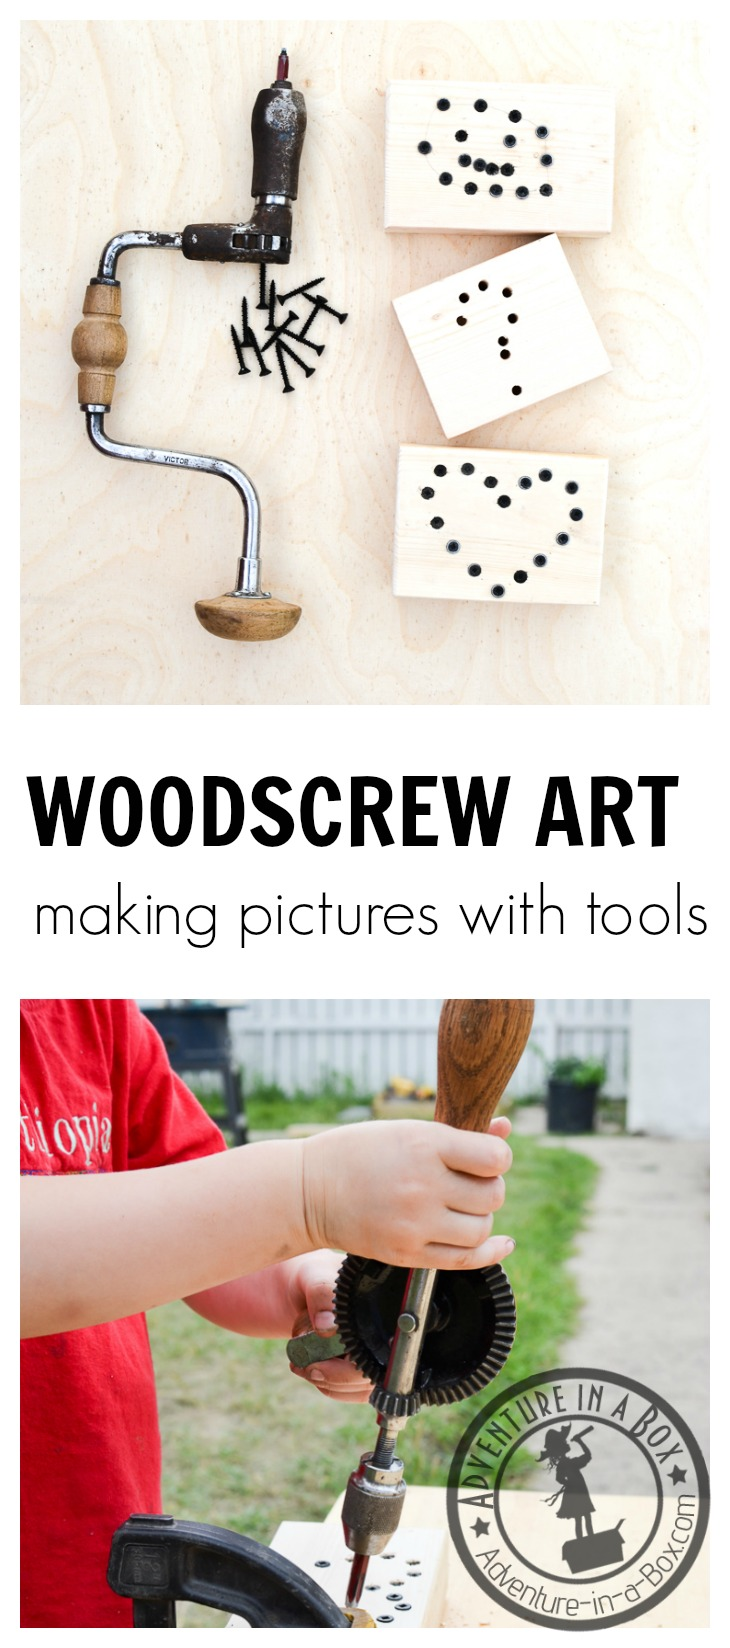 Woodscrew Art: Introduce children to screwdriving tools while making rustic and quirky woodscrew art. Simple Montessori-inspired steps. Great crafting fun for little tinkerers!